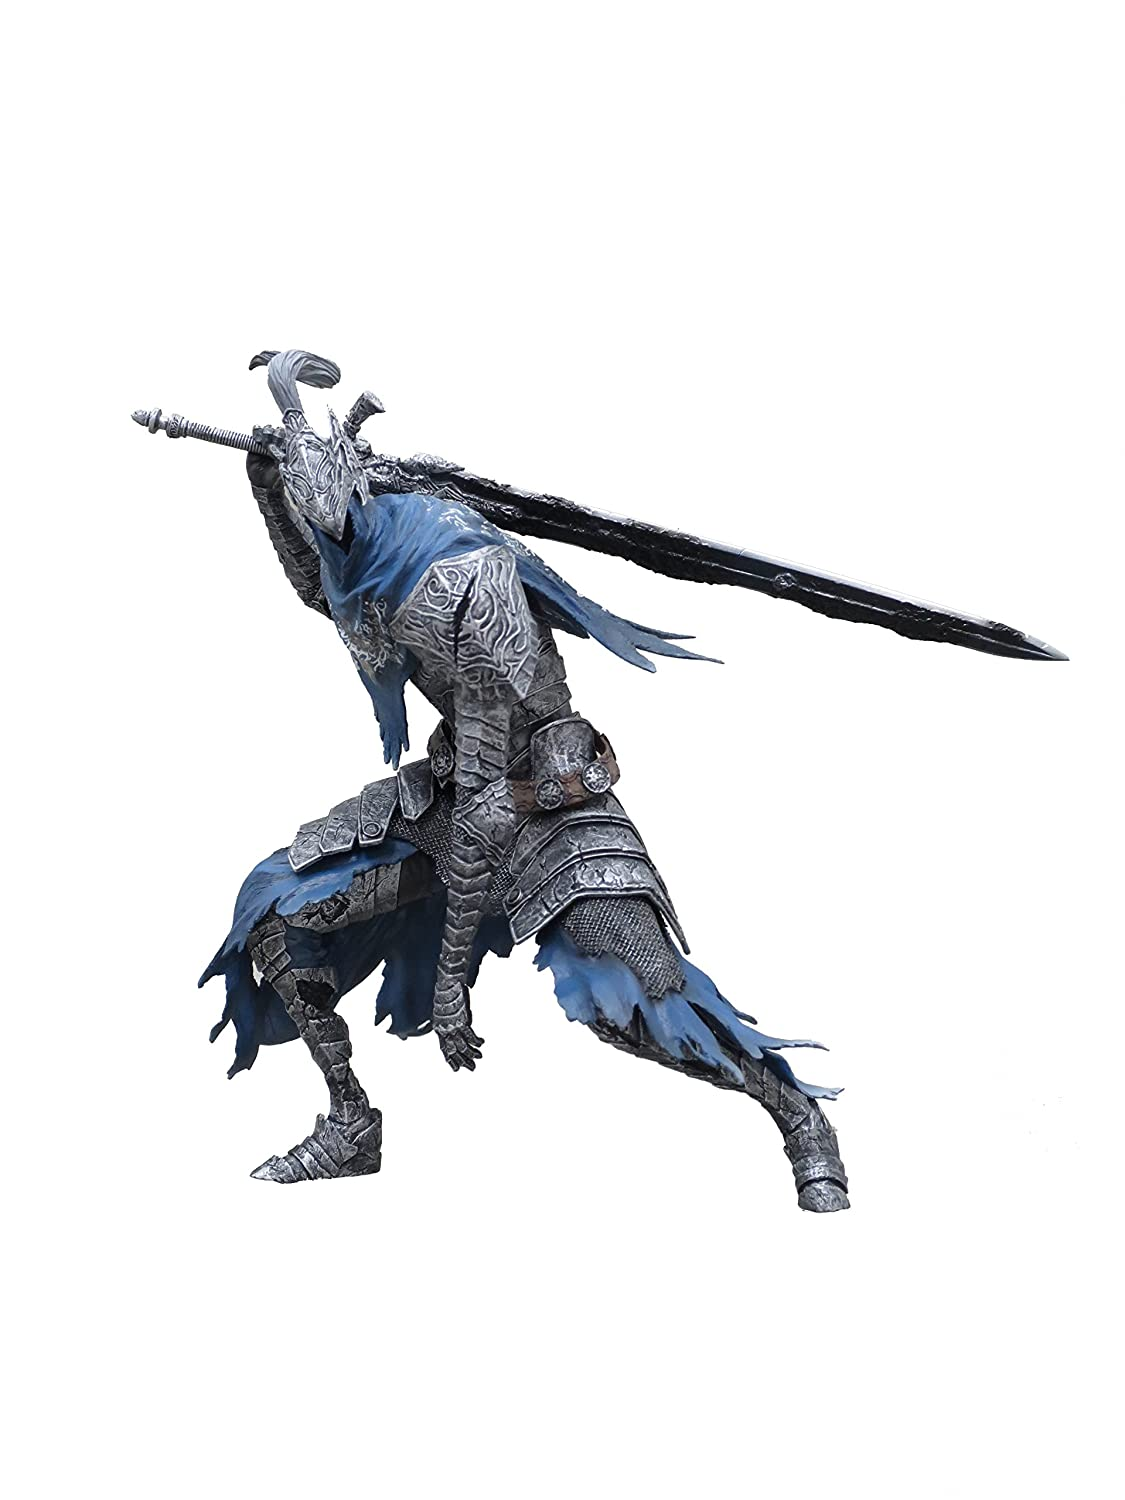 Banpresto Dark Souls DXF Sculpt Collection Volume 2 Artorias The Abysswalker Figure Bandai America Incorporated 26911